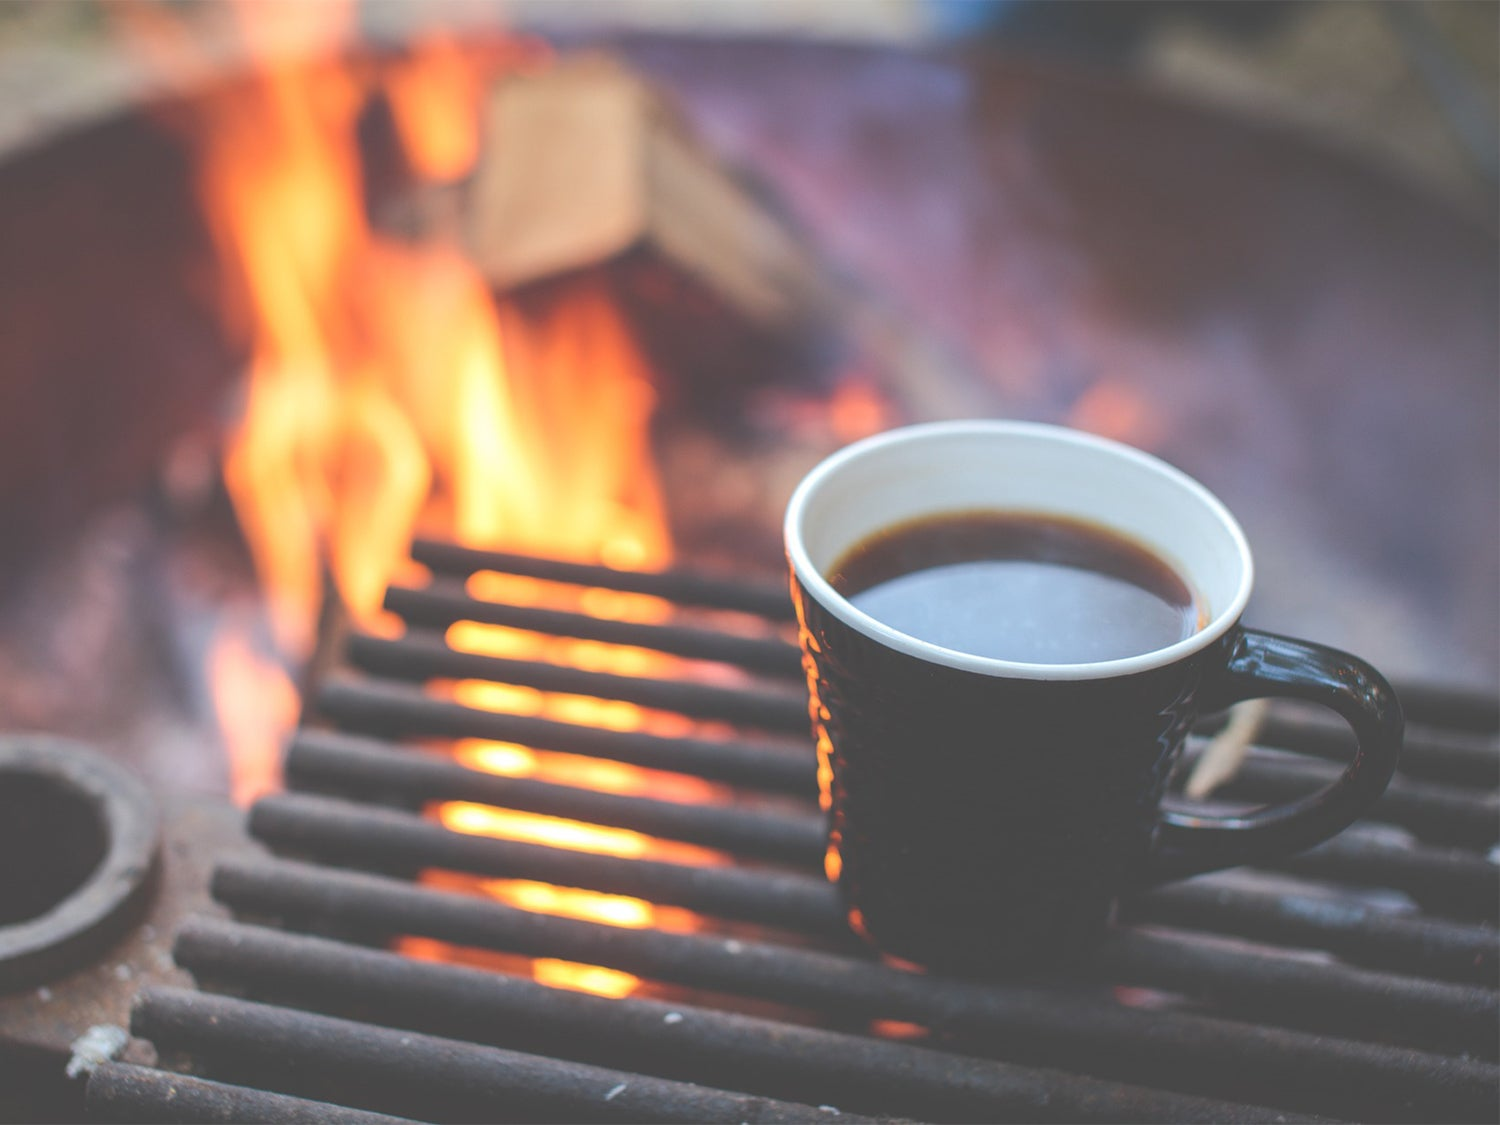 A cup of coffee beside a campfire.